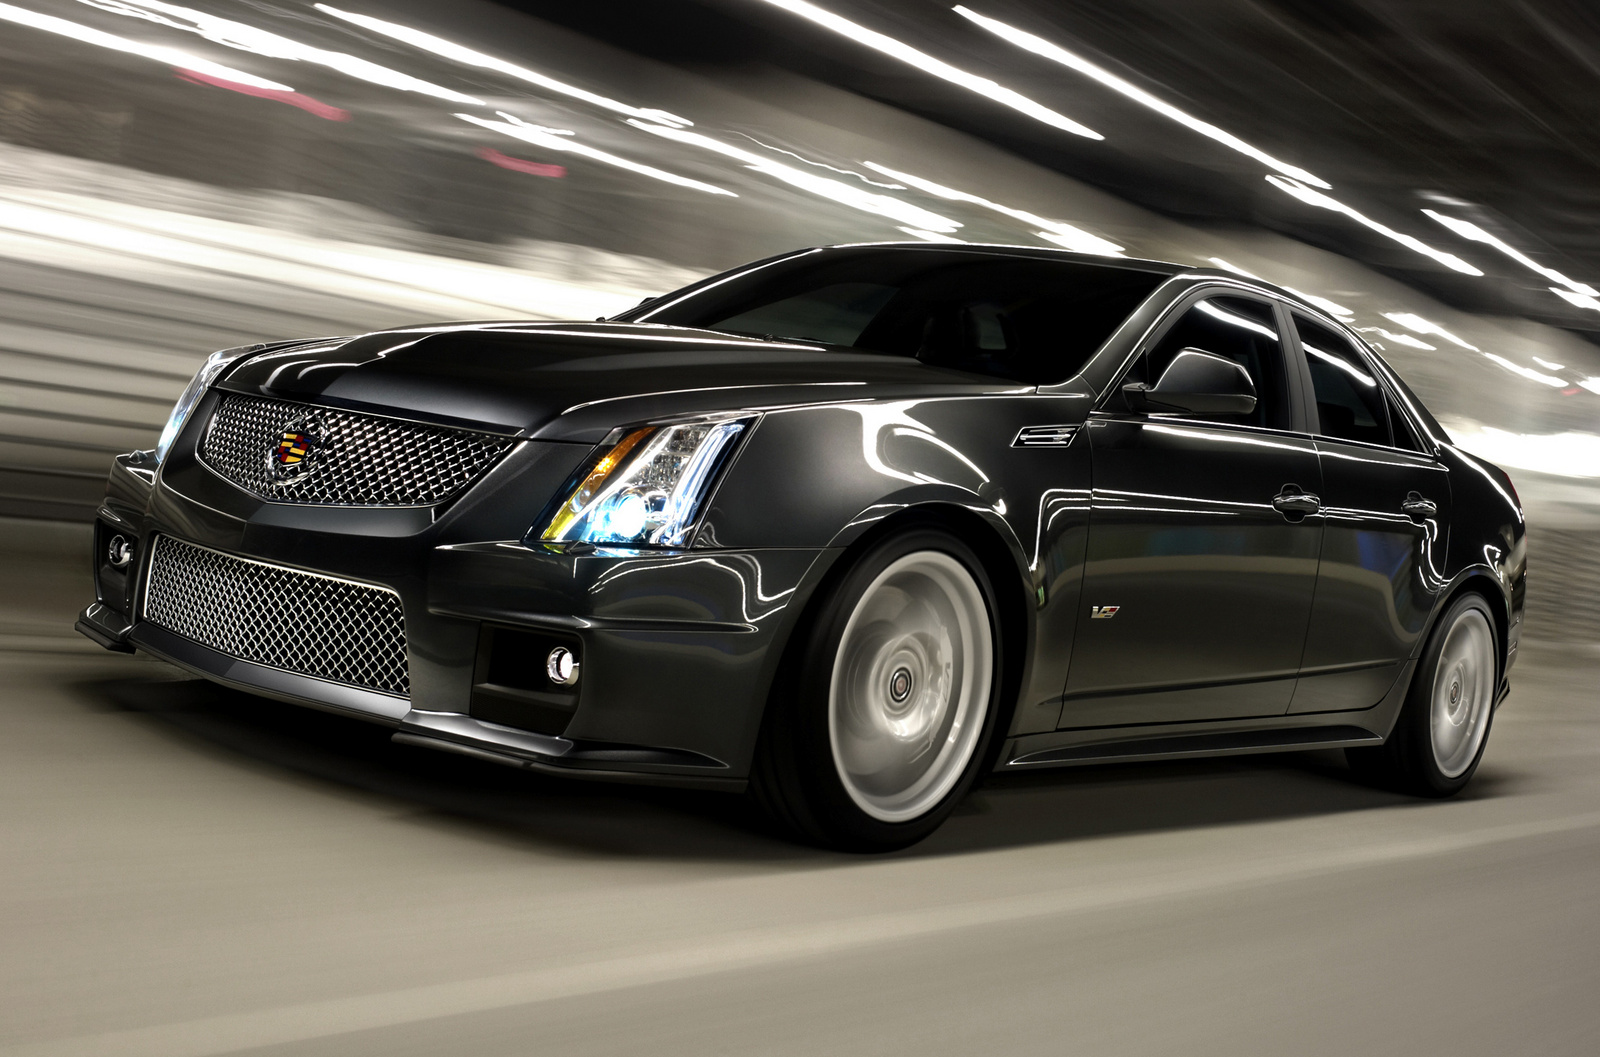 2014 cadillac cts v pictures cargurus. Black Bedroom Furniture Sets. Home Design Ideas